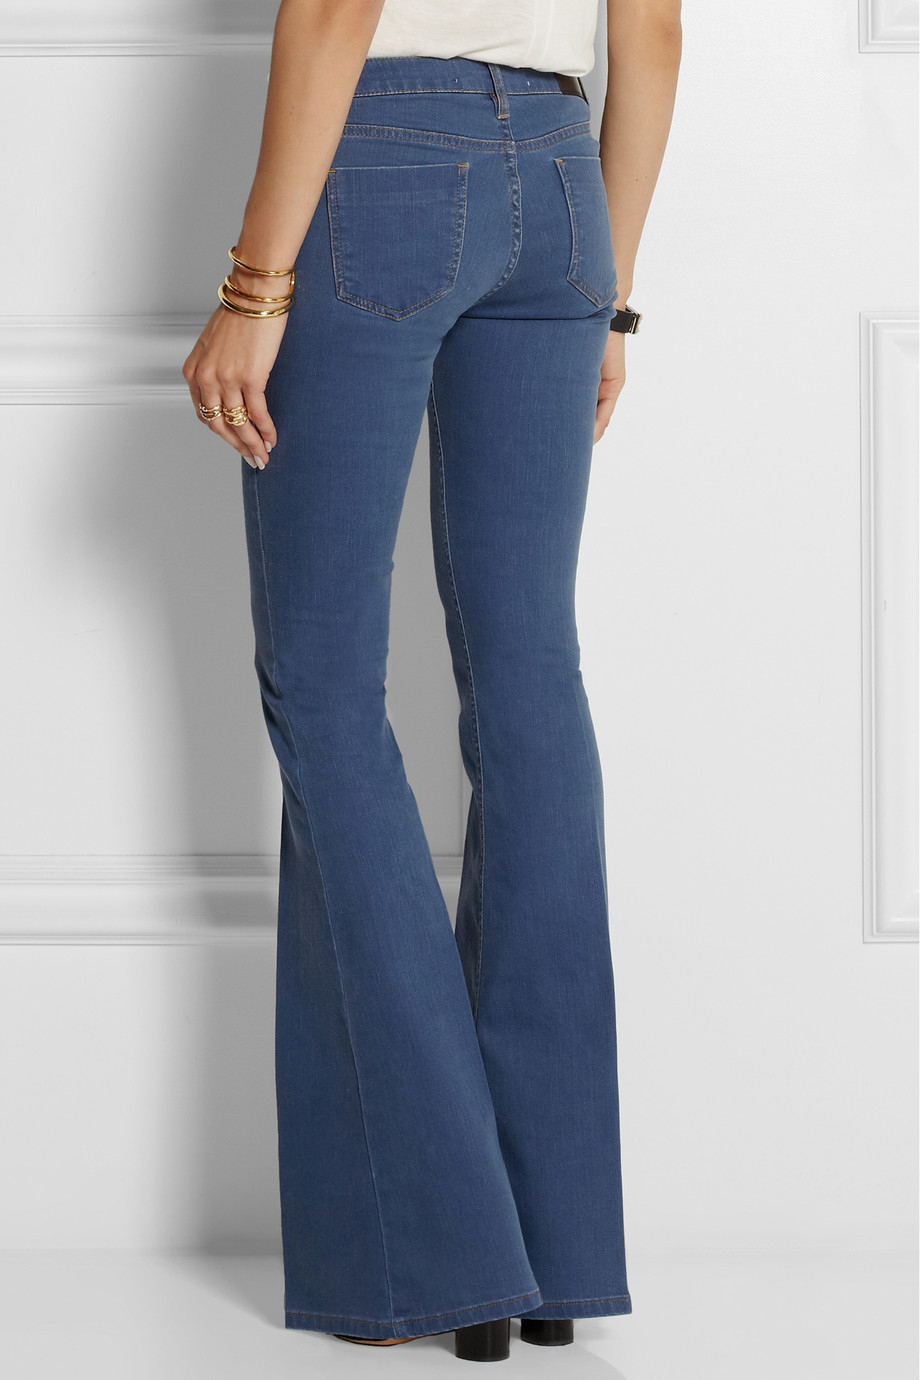 Lyst Victoria Beckham Flare High Rise Jeans In Blue